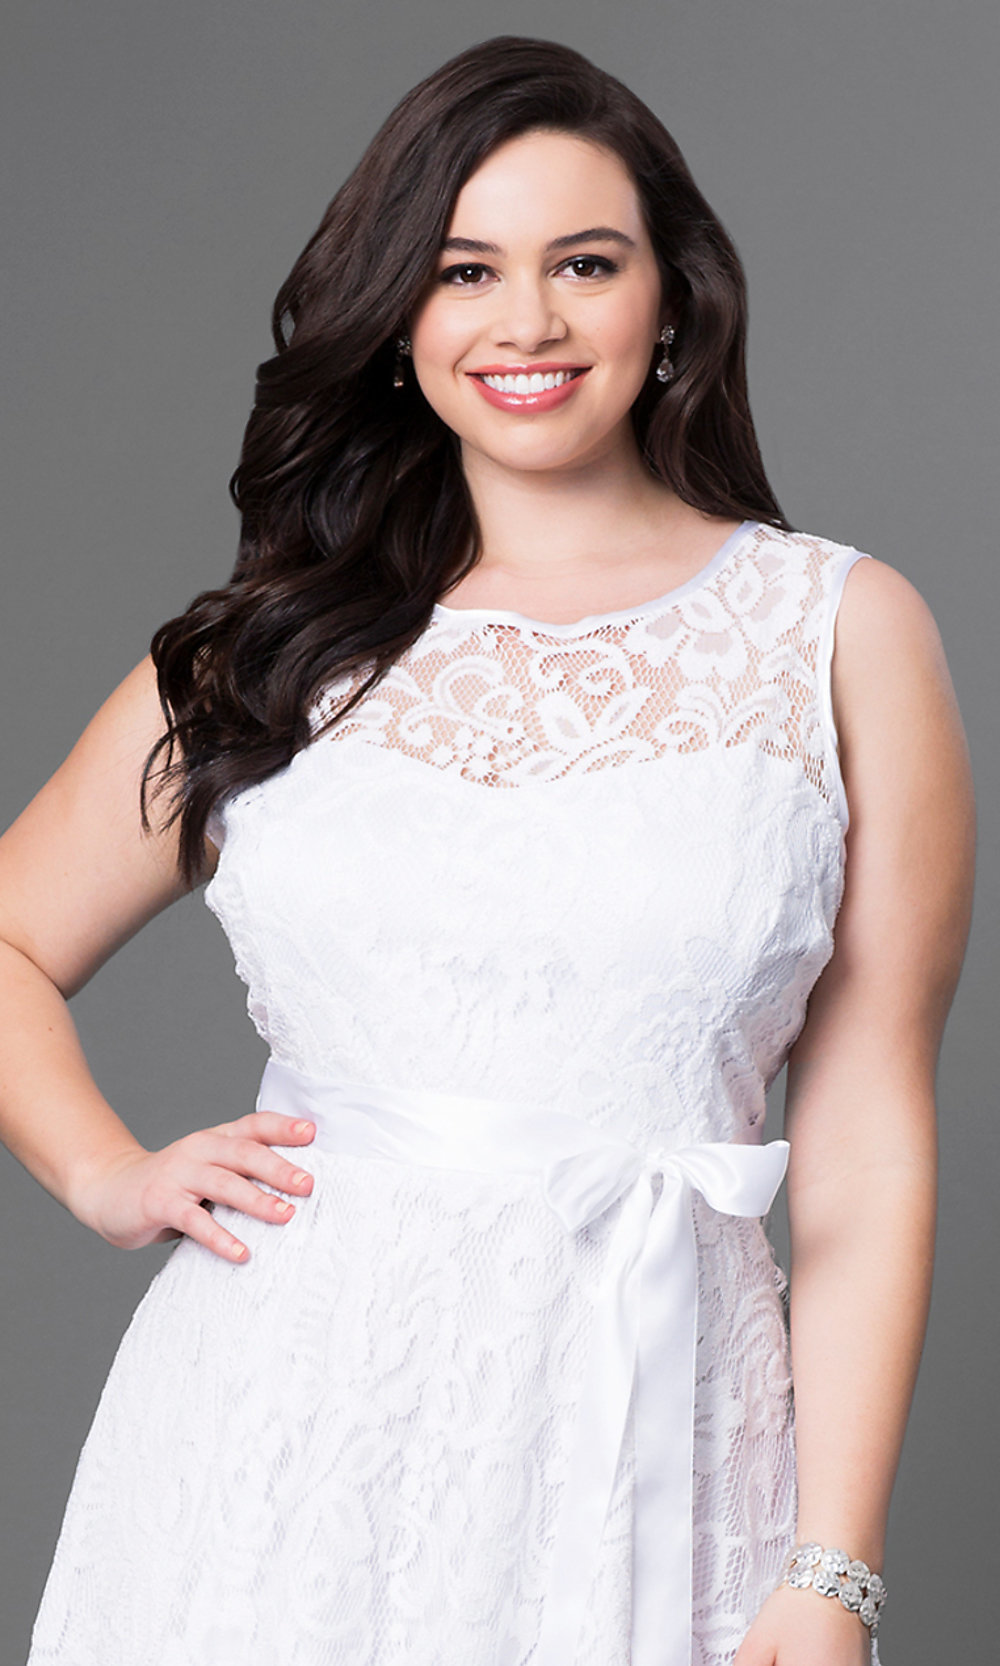 Lace Plus-Size Sleeveless Party Dress with Bow